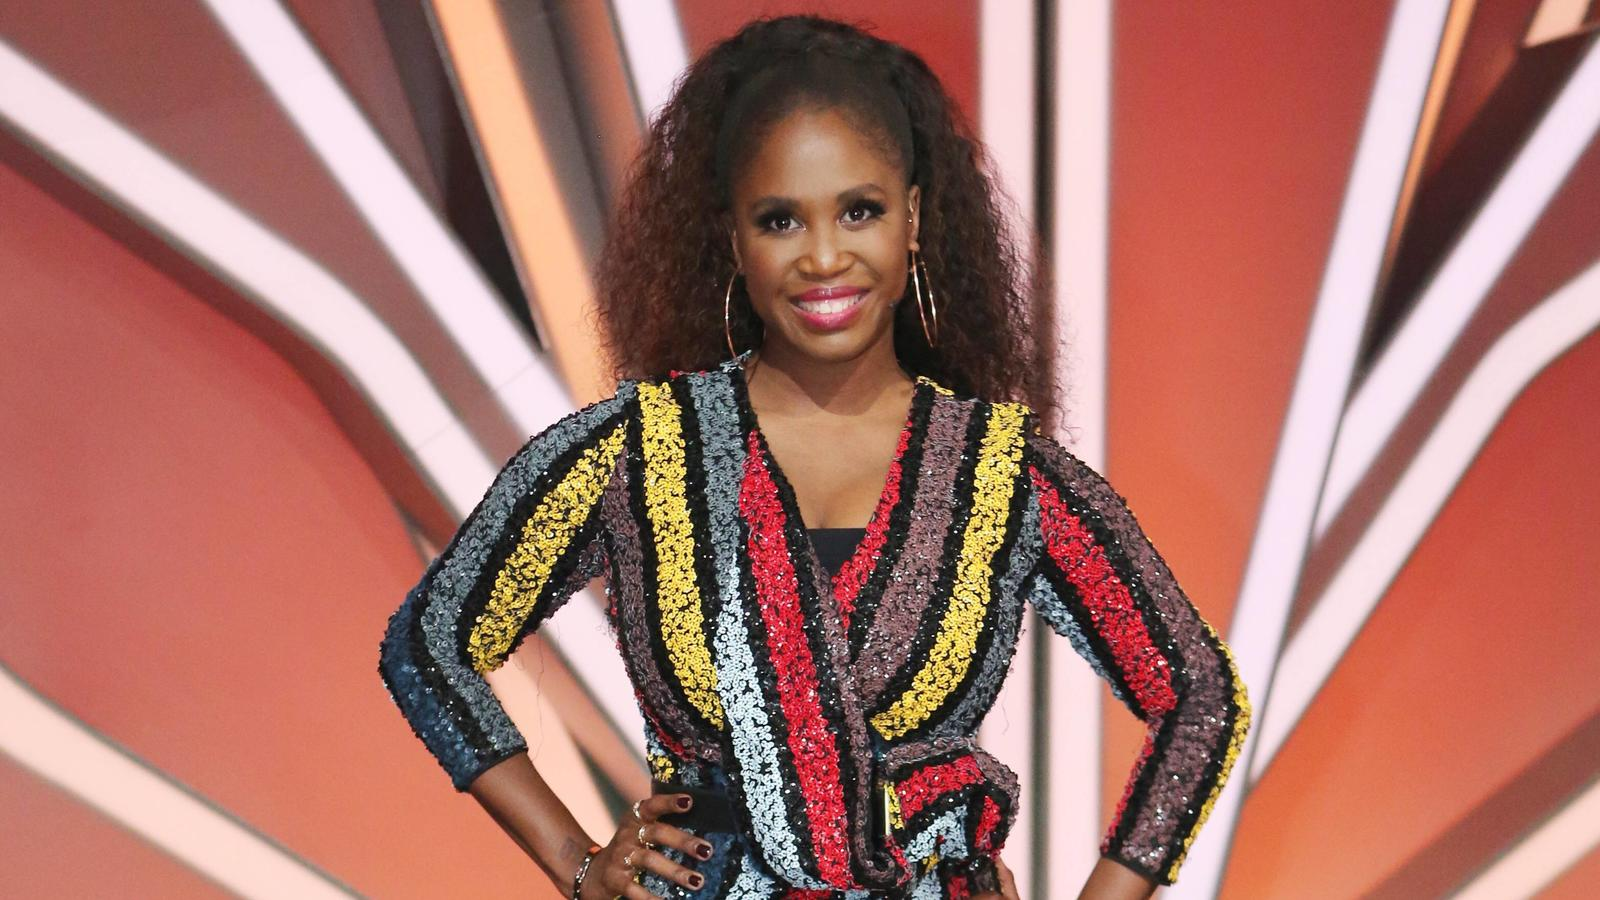 Jurorin Motsi Mabuse , RTL Let«s Dance - Staffel 12 - Sendung 8 - Folge 8. - TV-Melodien, RTL Lets dance, 17.05.2019, MMC-Studios (Coloneum) - *** Juror Motsi Mabuse , RTL Lets Dance Season 12 Broadcast 8 Episode 8 TV Melodies, RTL Lets dance, 17 05